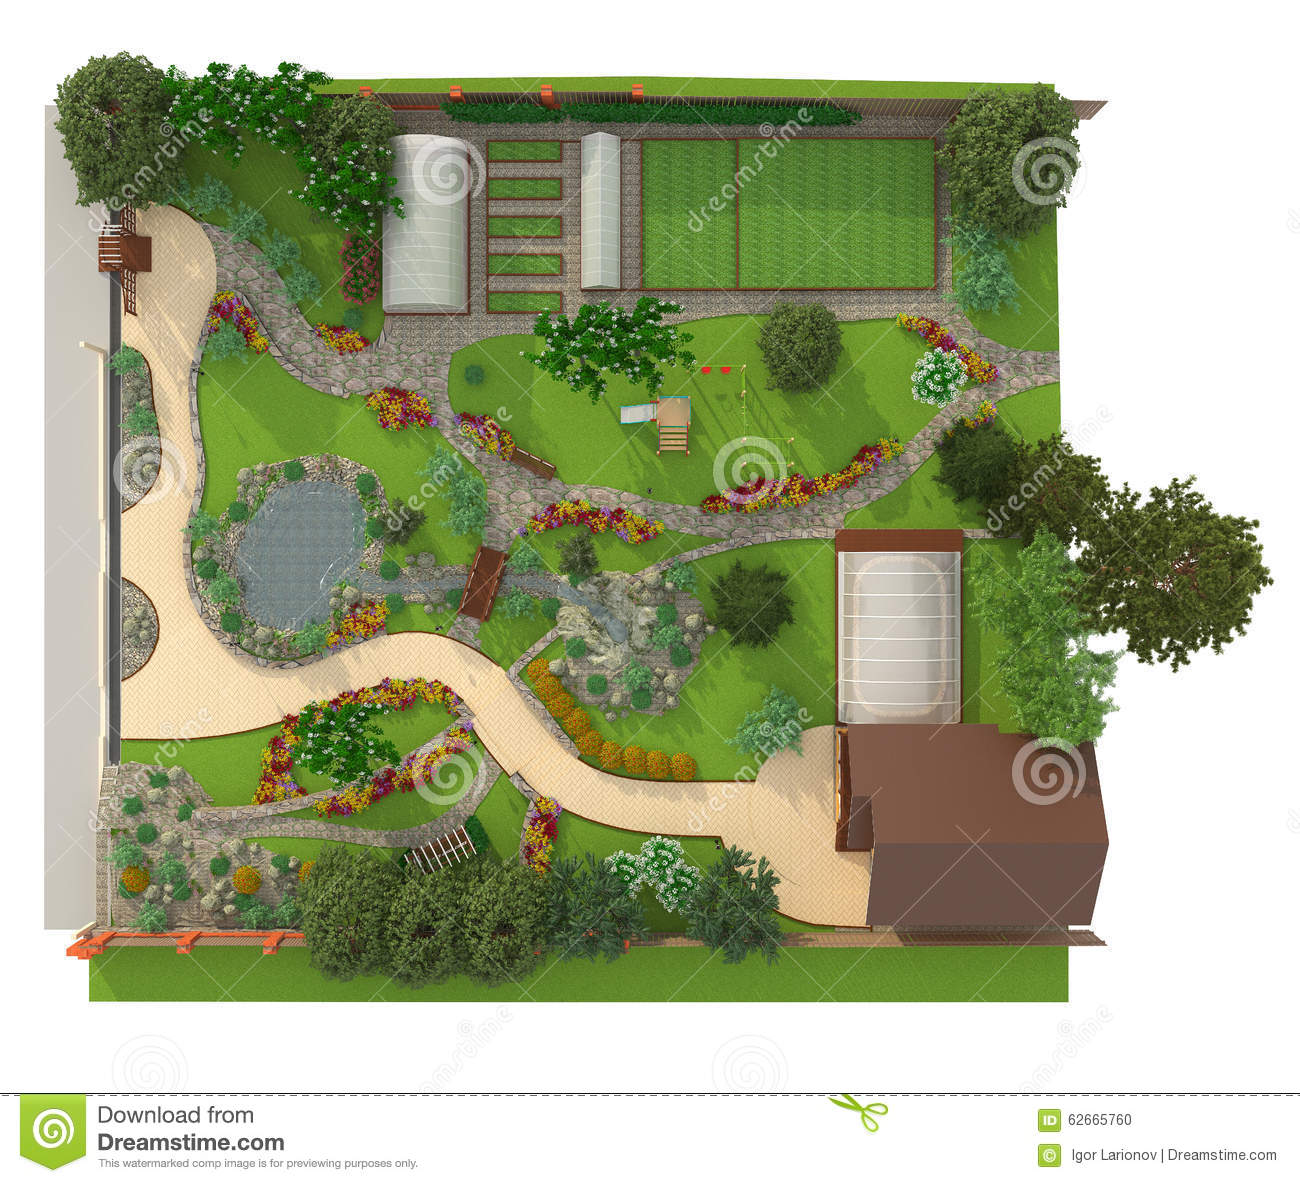 design for a community garden by jo connolly gardencad using the